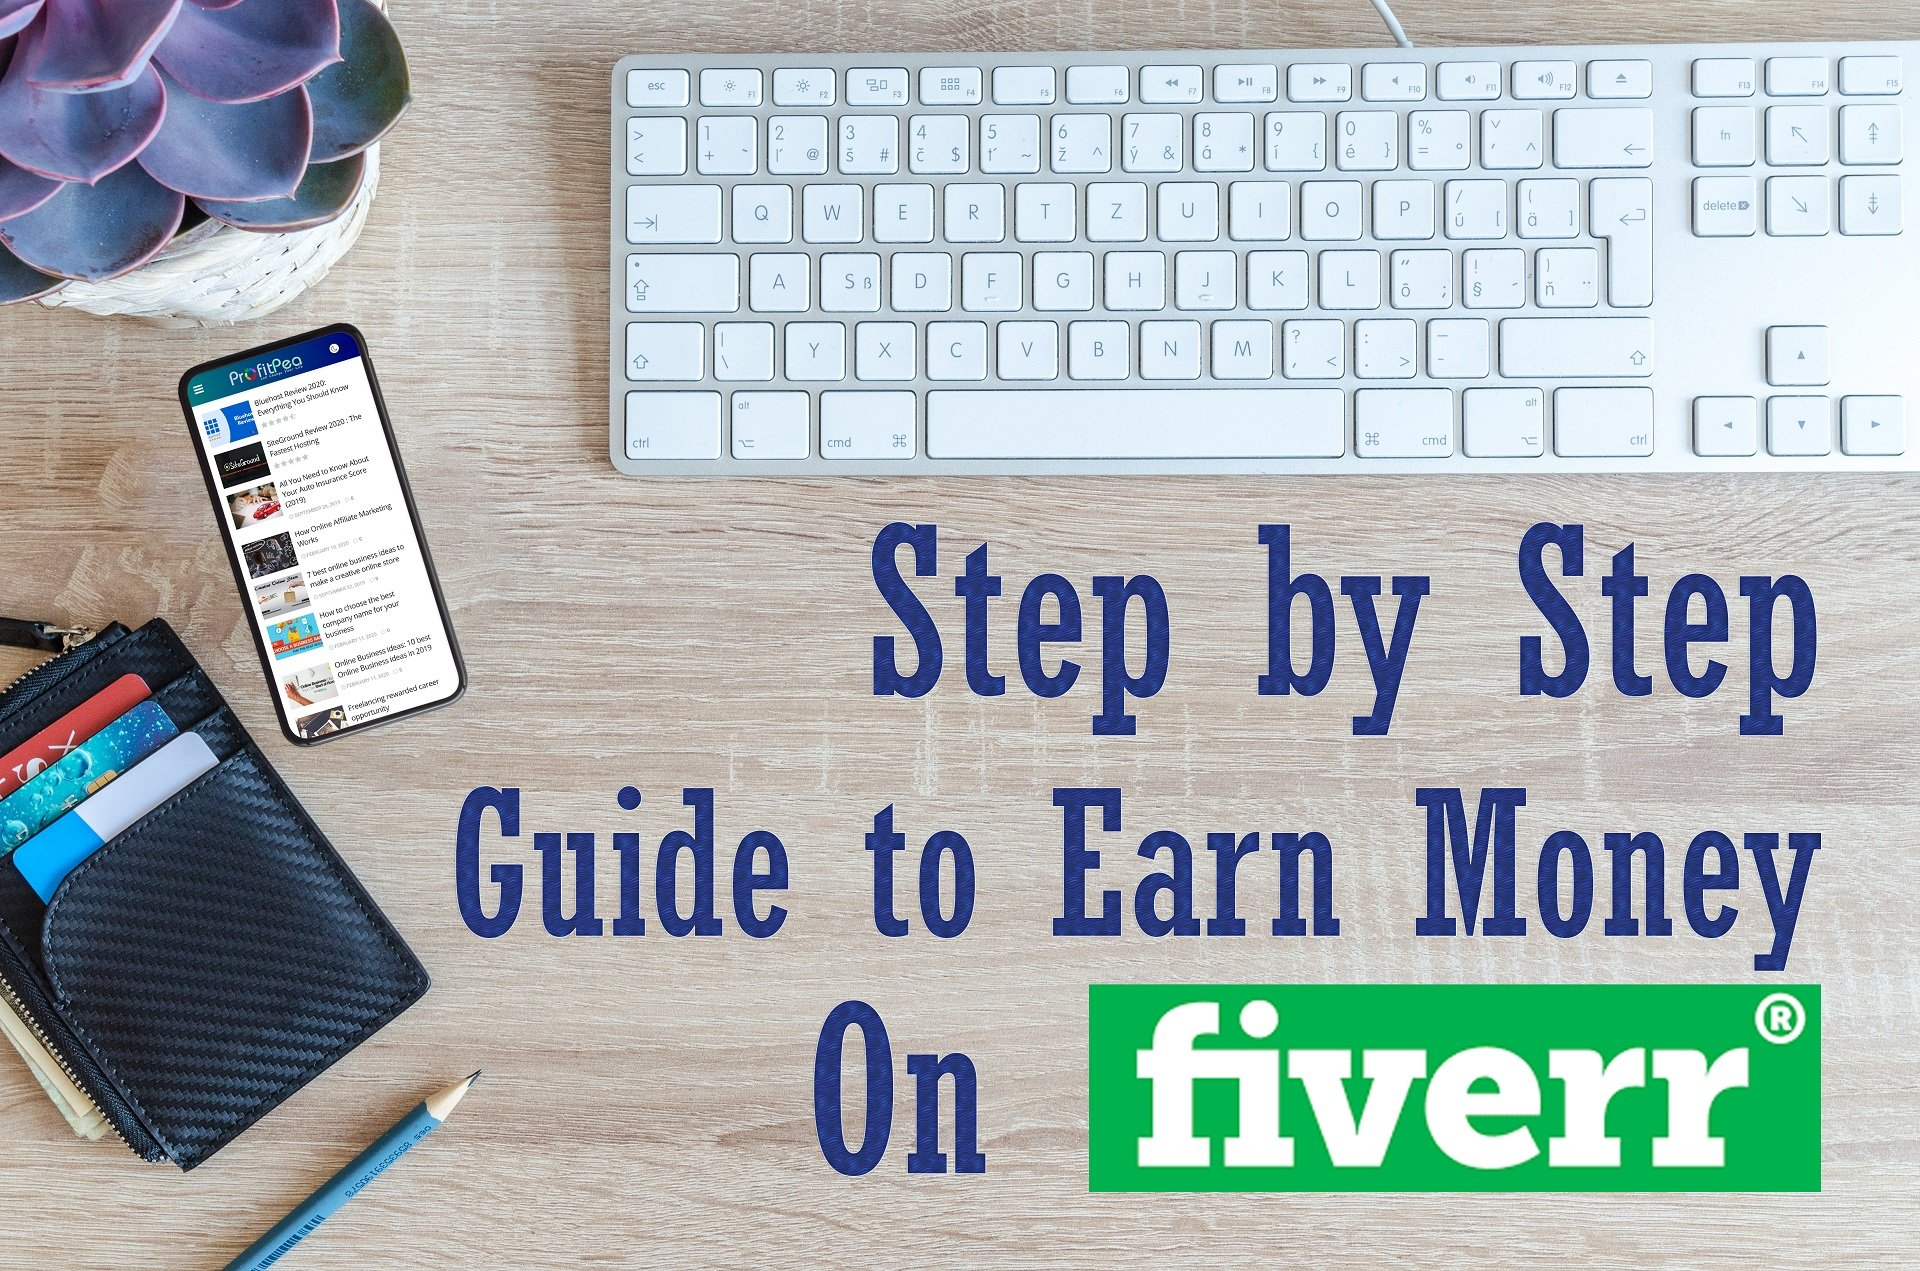 Step by Step Guide to Make Money on Fiverr